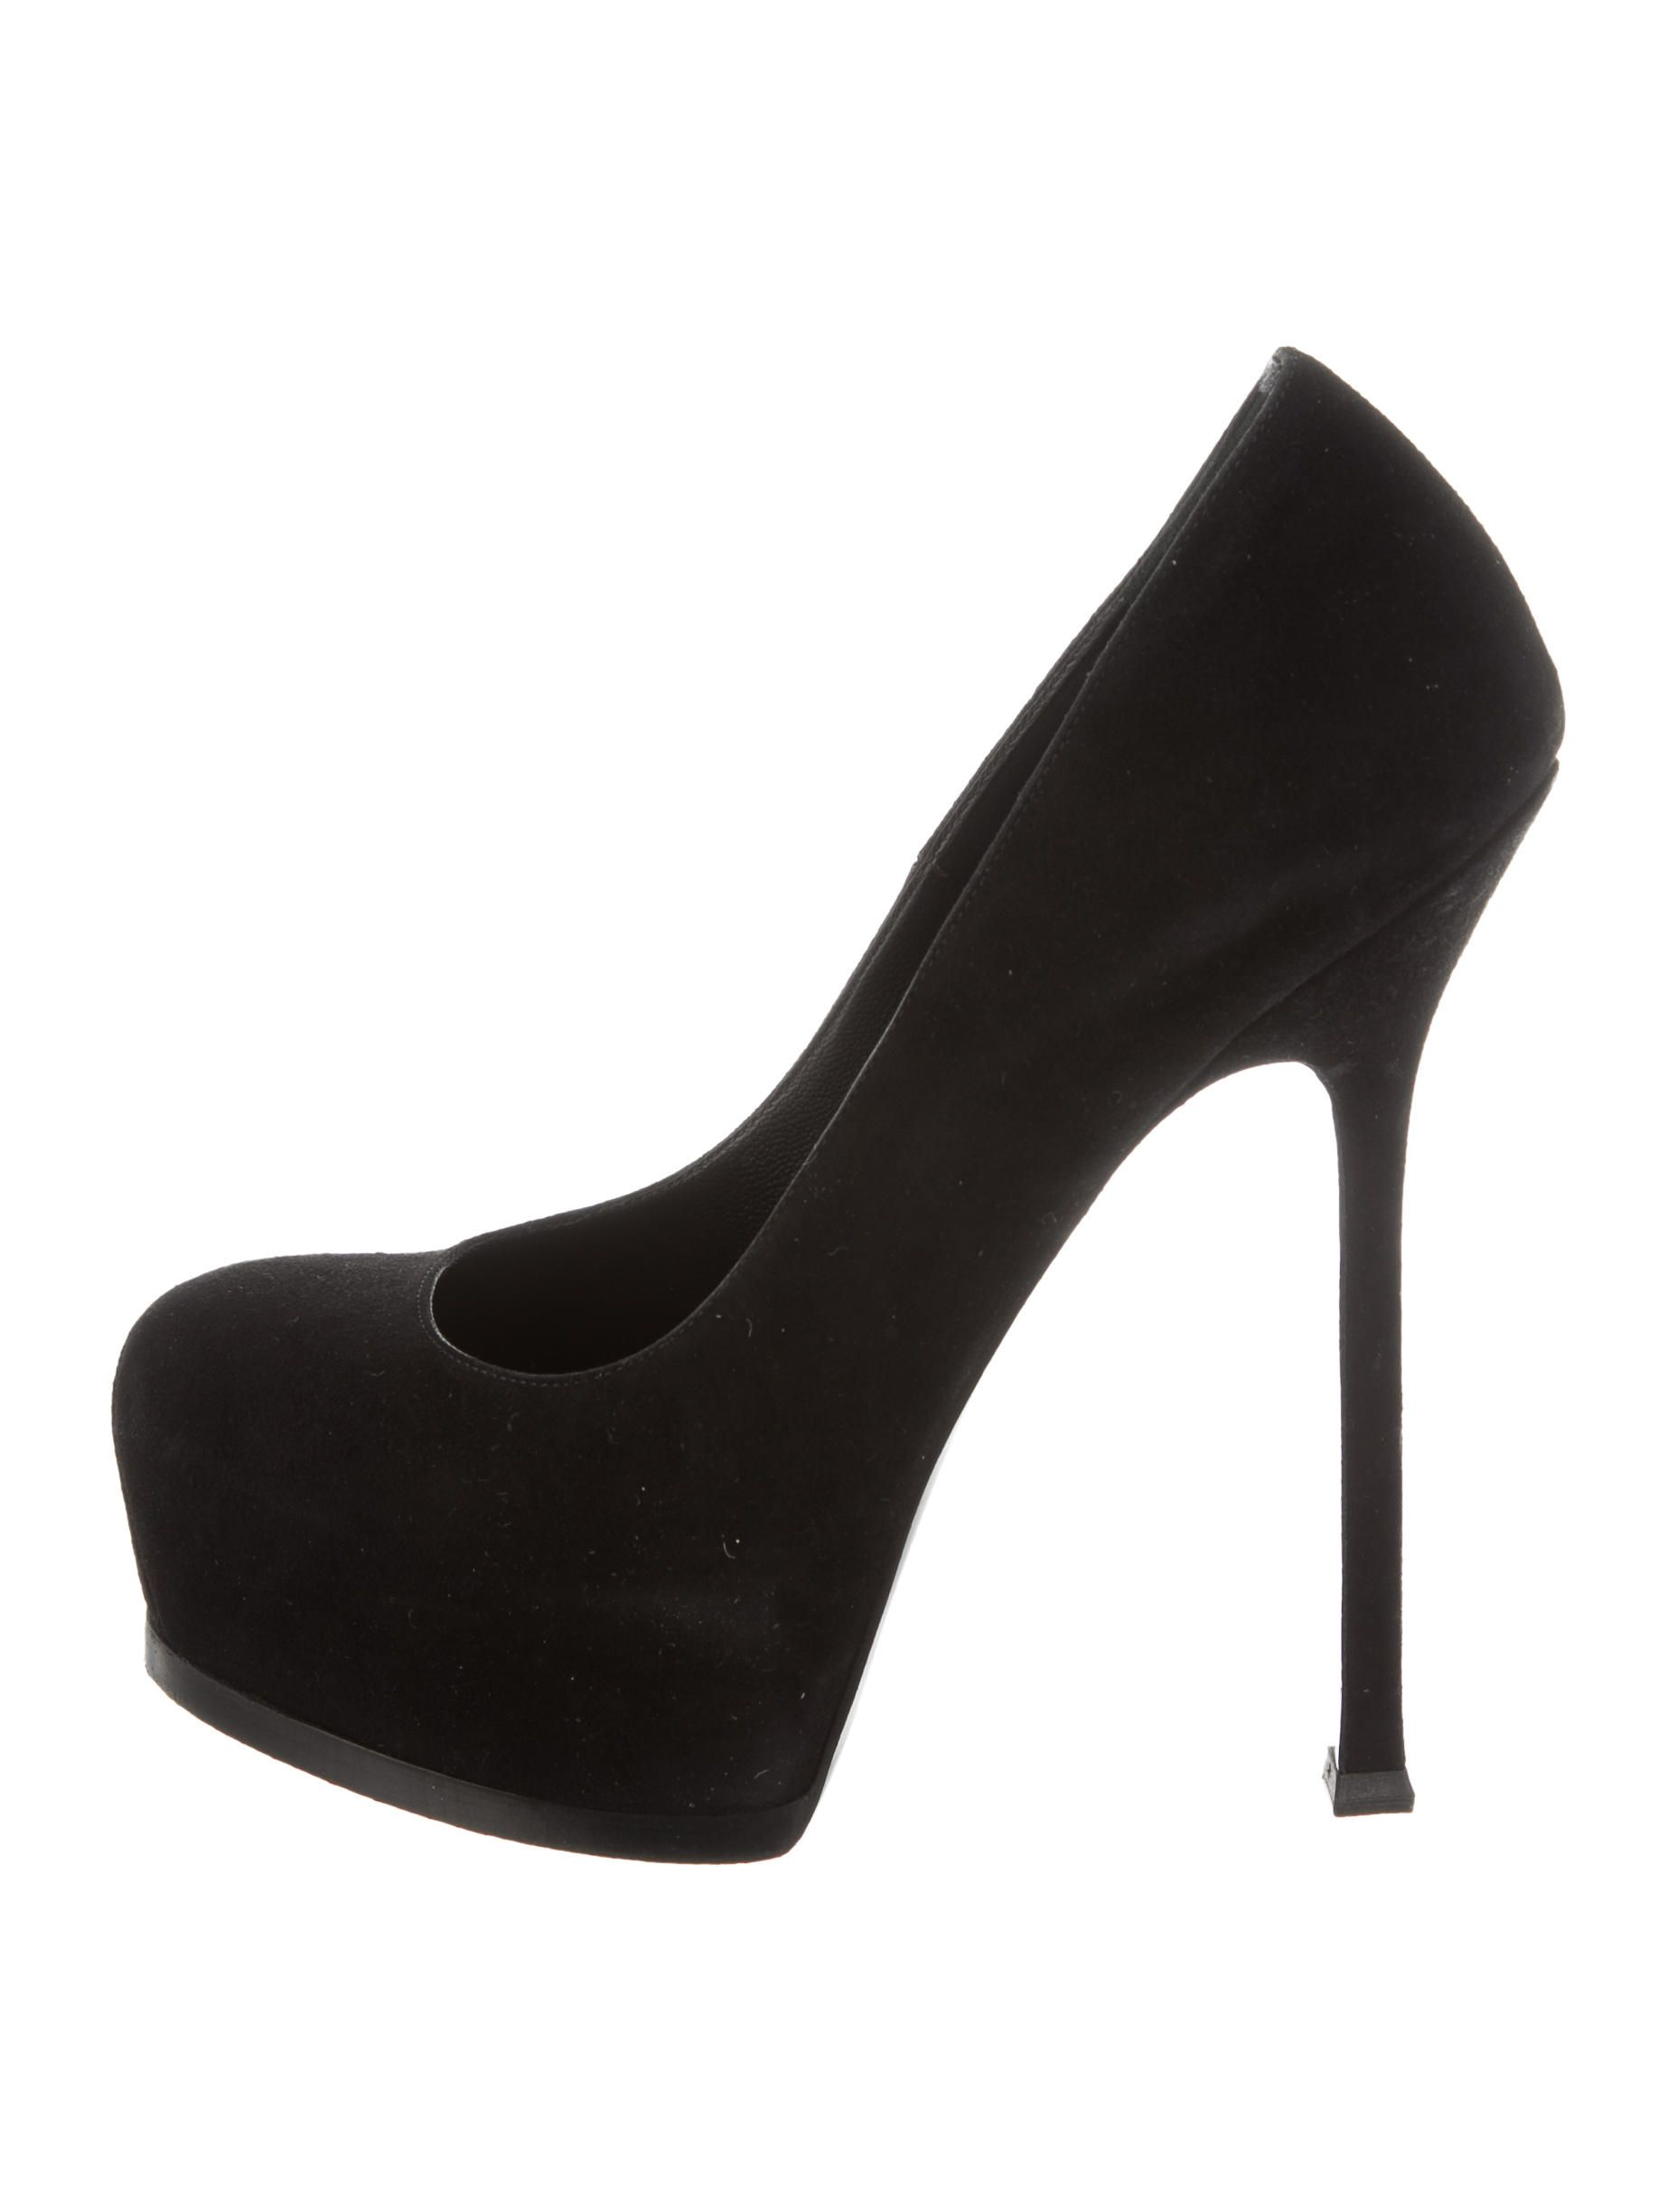 ffa0b4445485 Black suede Yves Saint Laurent Tribute platform pumps with tonal stitching  and covered heels. Includes box and dust bag.